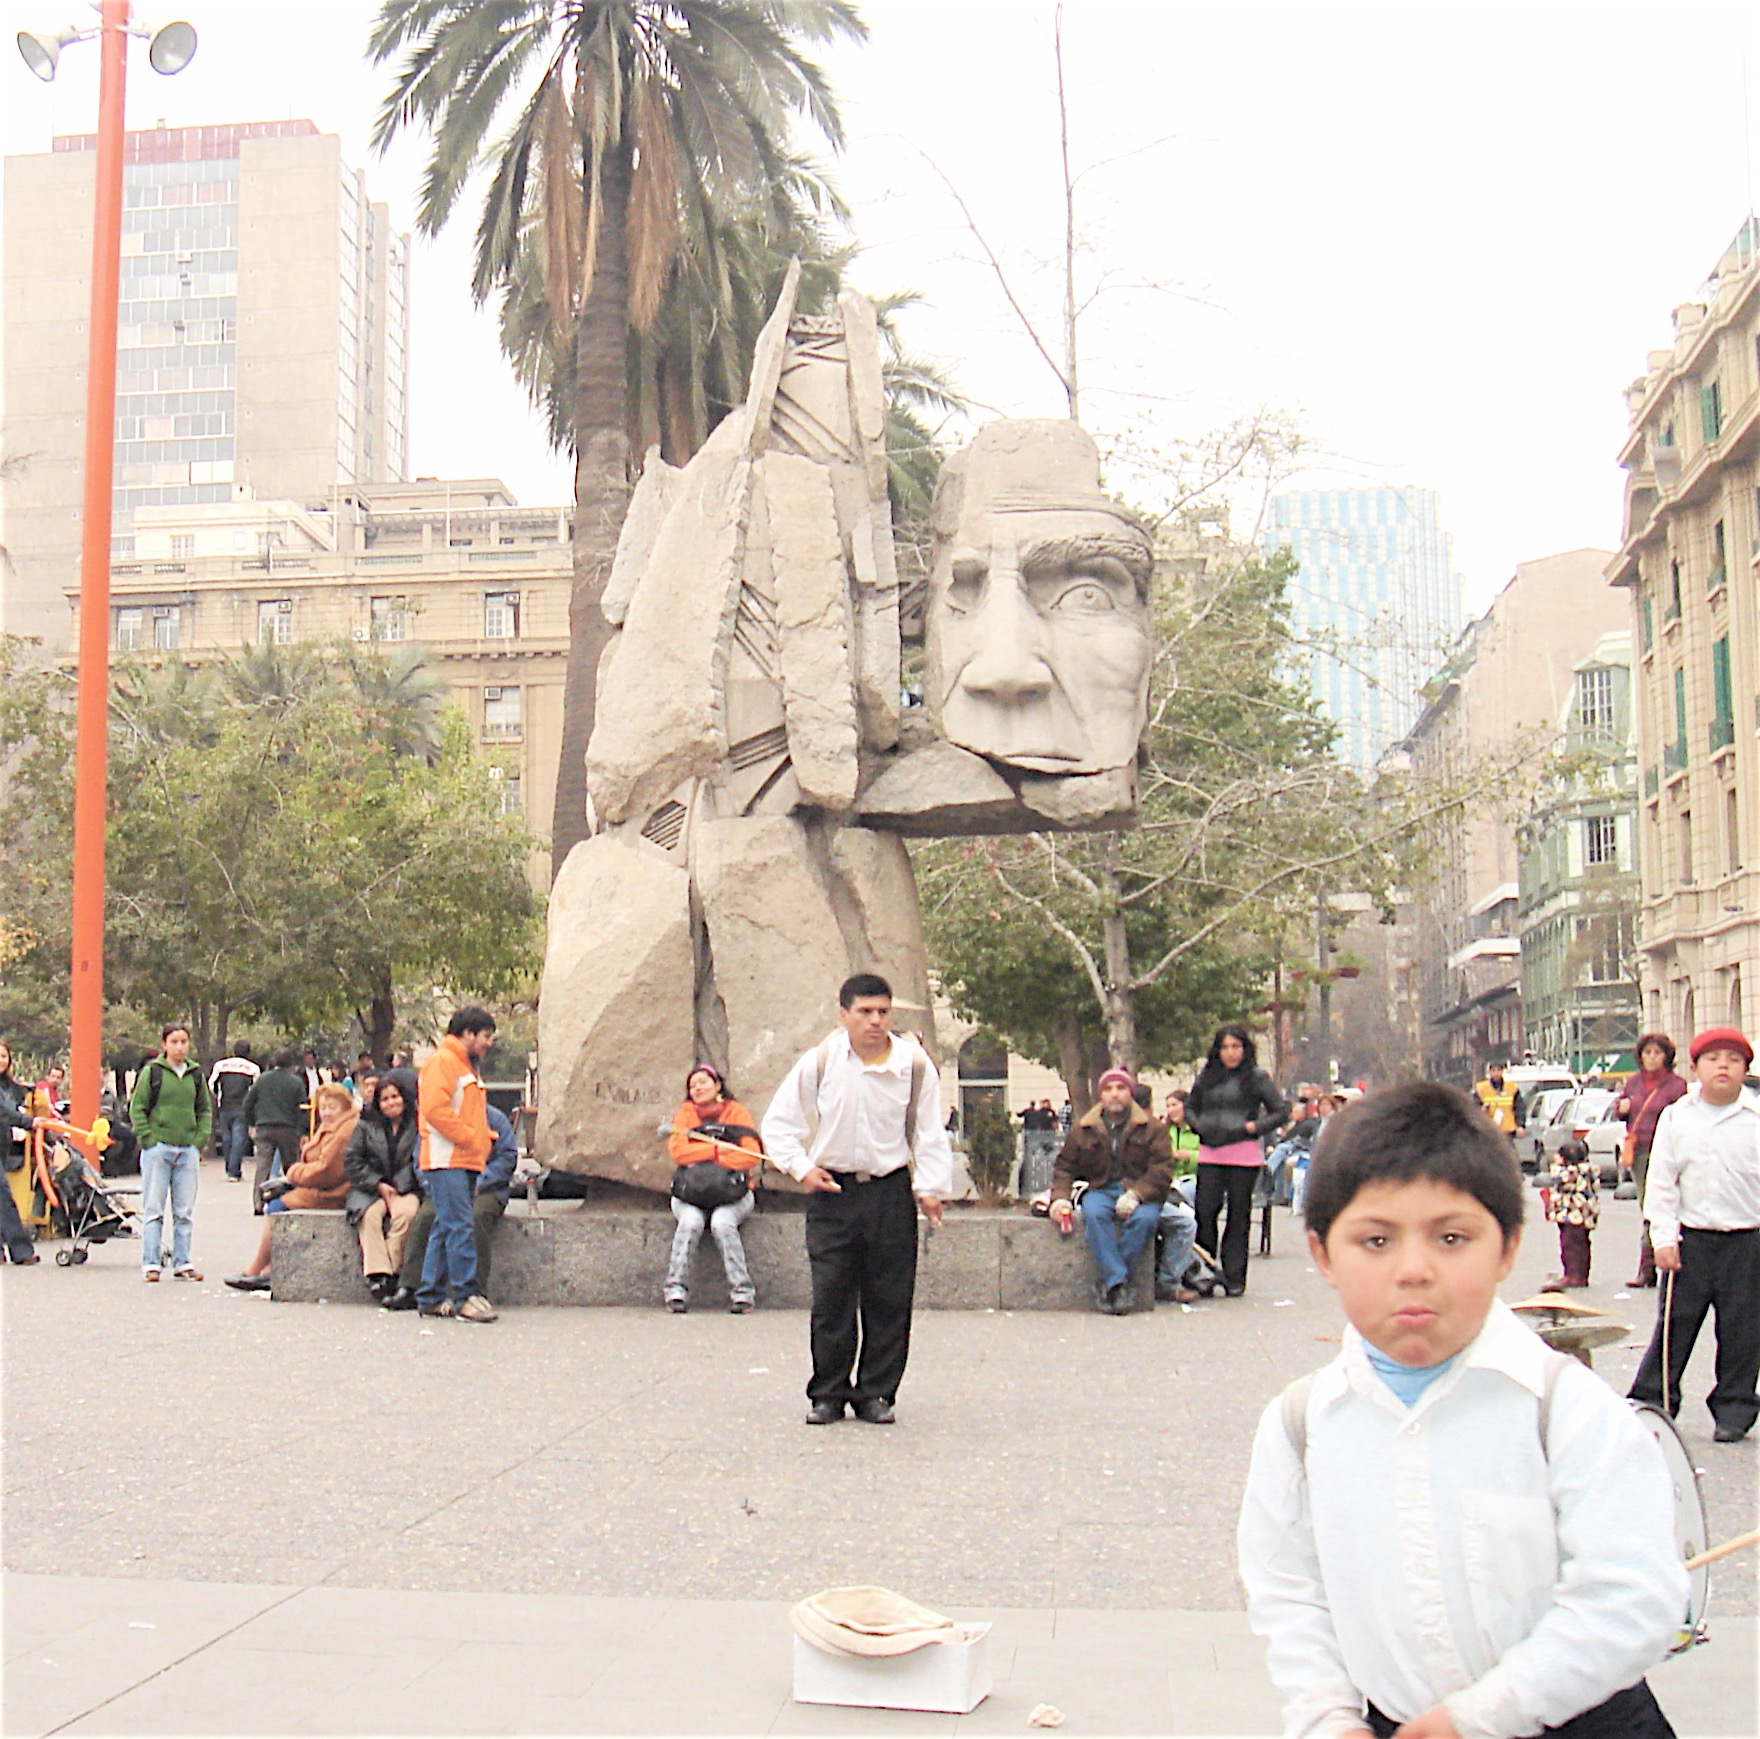 Near the center of Santiago. Palm trees, monuments, and street performers